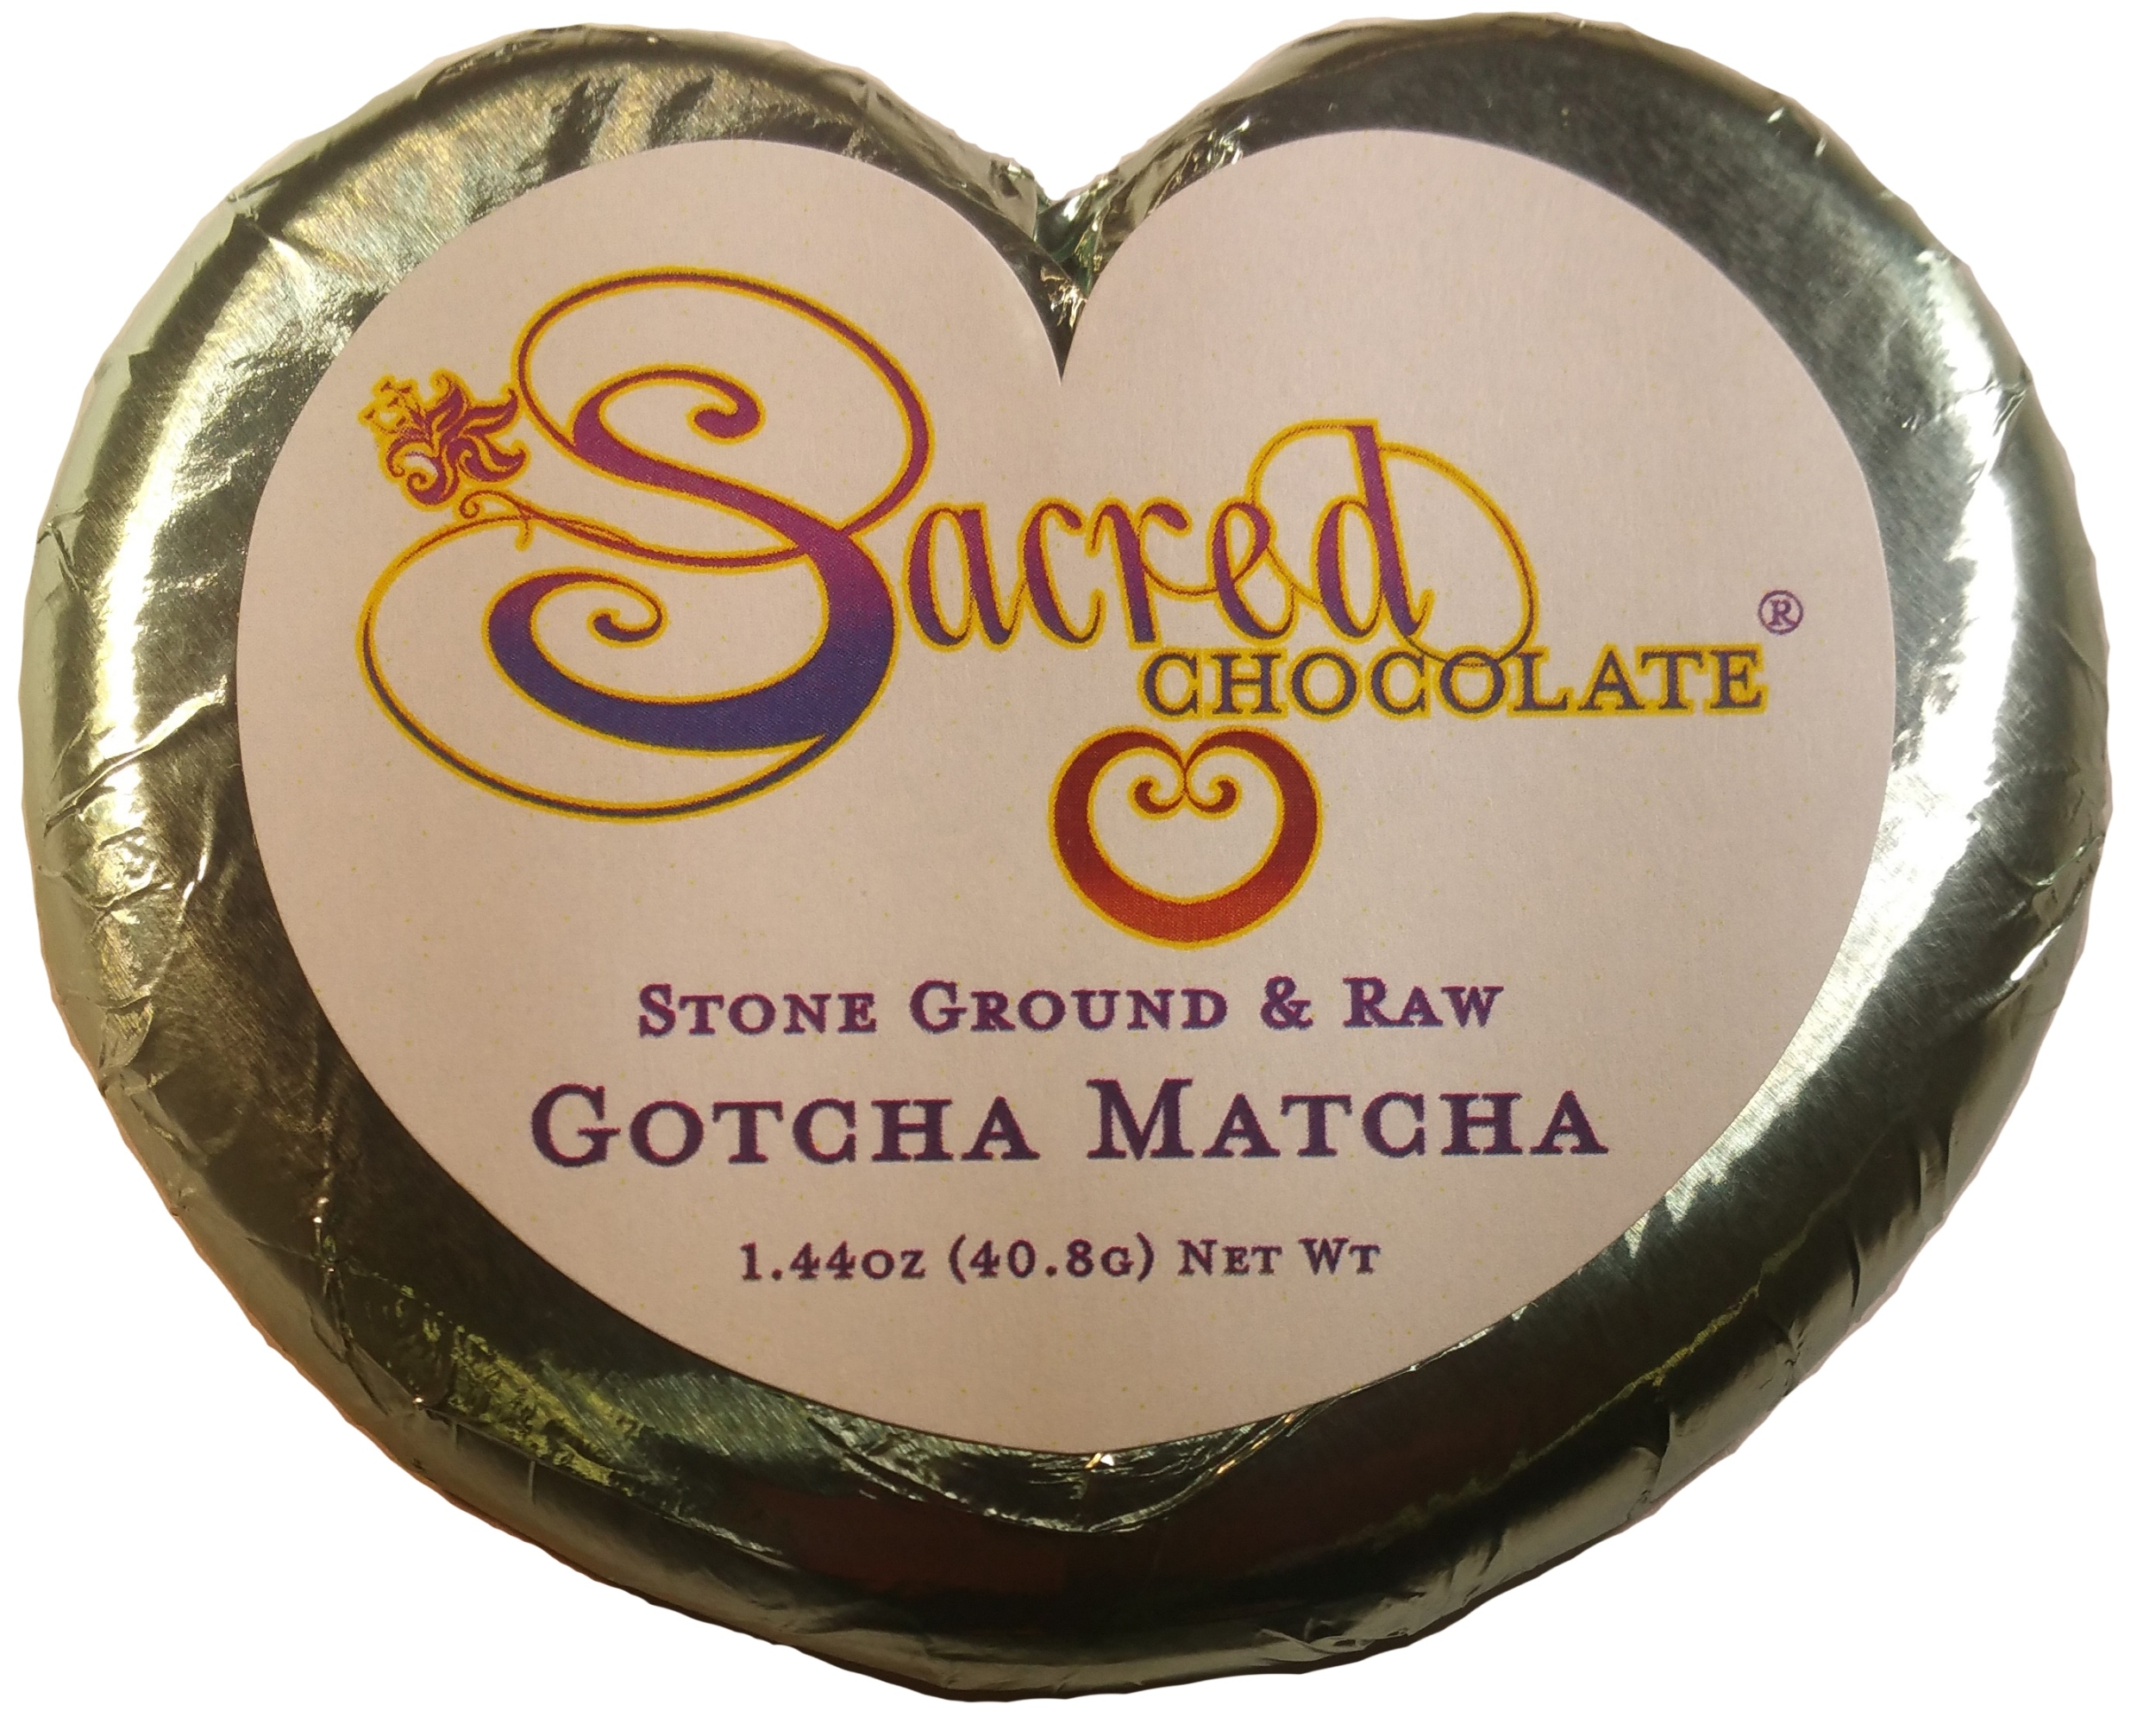 Gotcha Matcha - 1.44oz Heart Bar